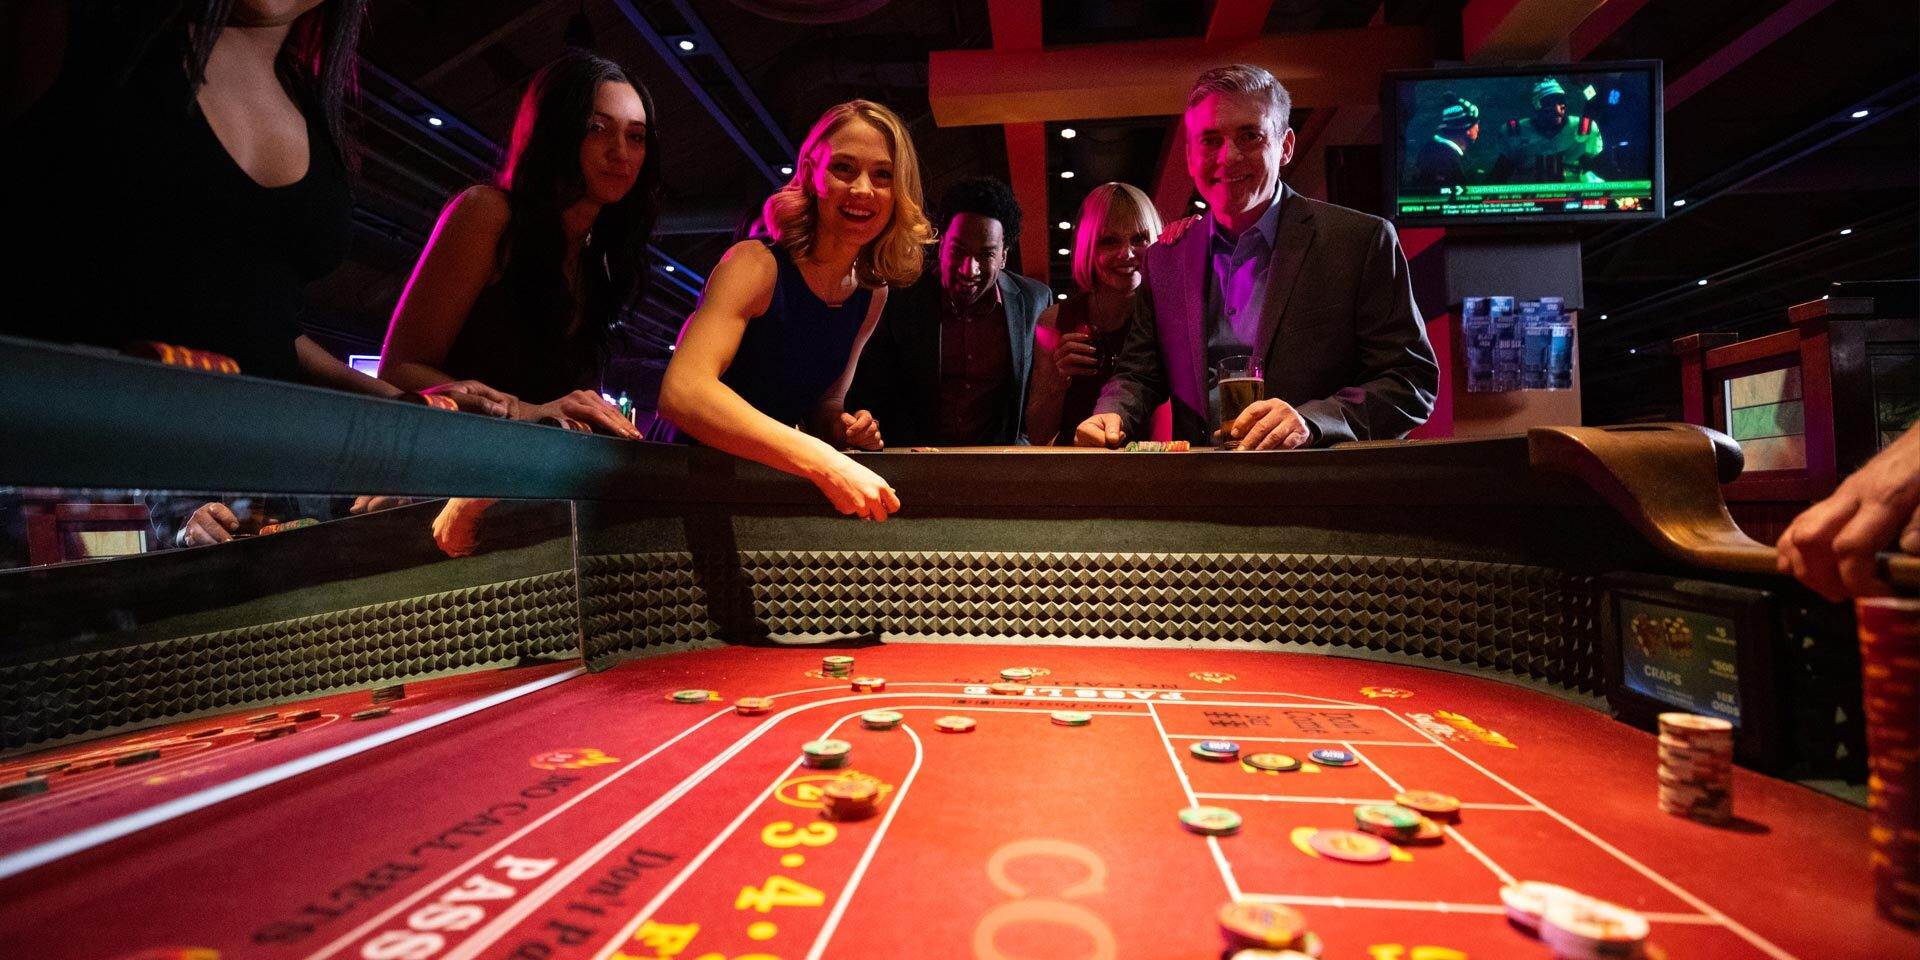 People enjoying a game at the casino.